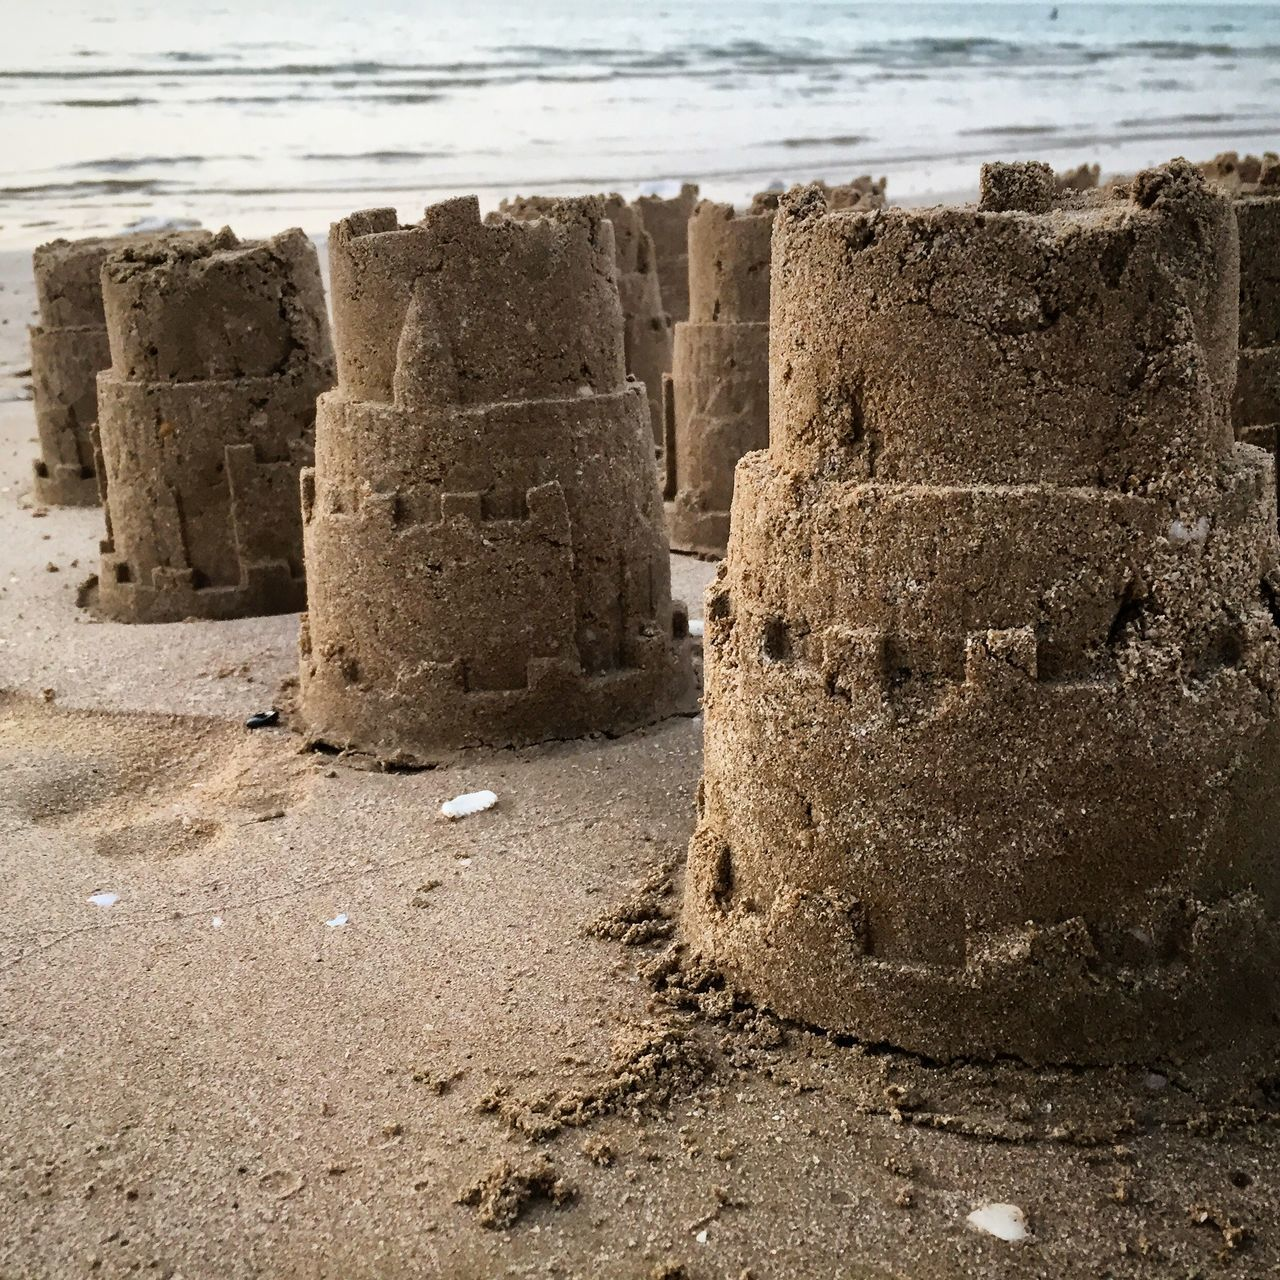 sea, beach, sand, nature, day, water, outdoors, no people, ancient, beauty in nature, close-up